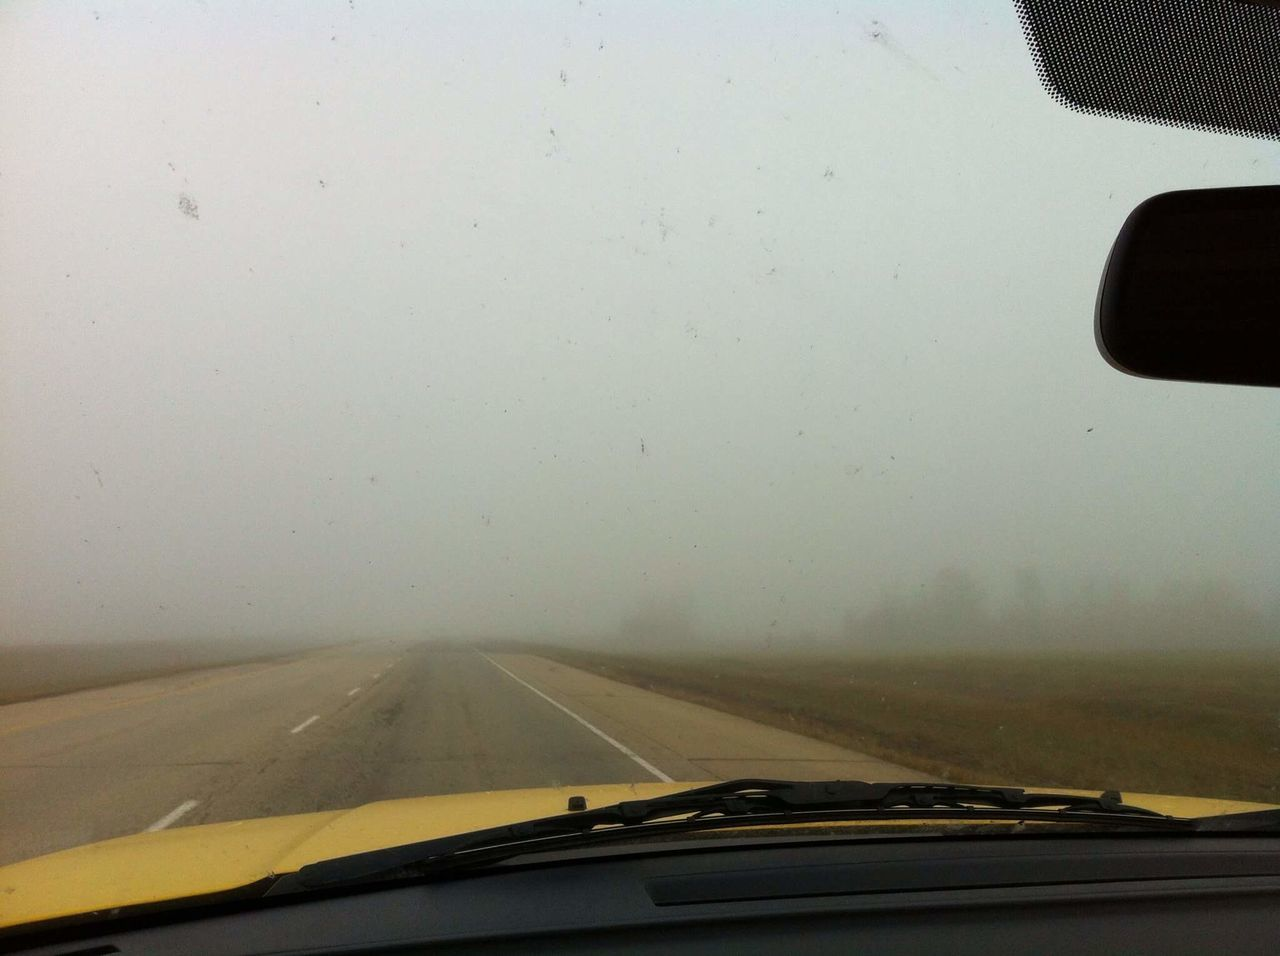 Driving through foggy, stormy Alberta! Driving Foggy Stormy Alberta Road Travel Traveling Journey Trees Vision Visibility